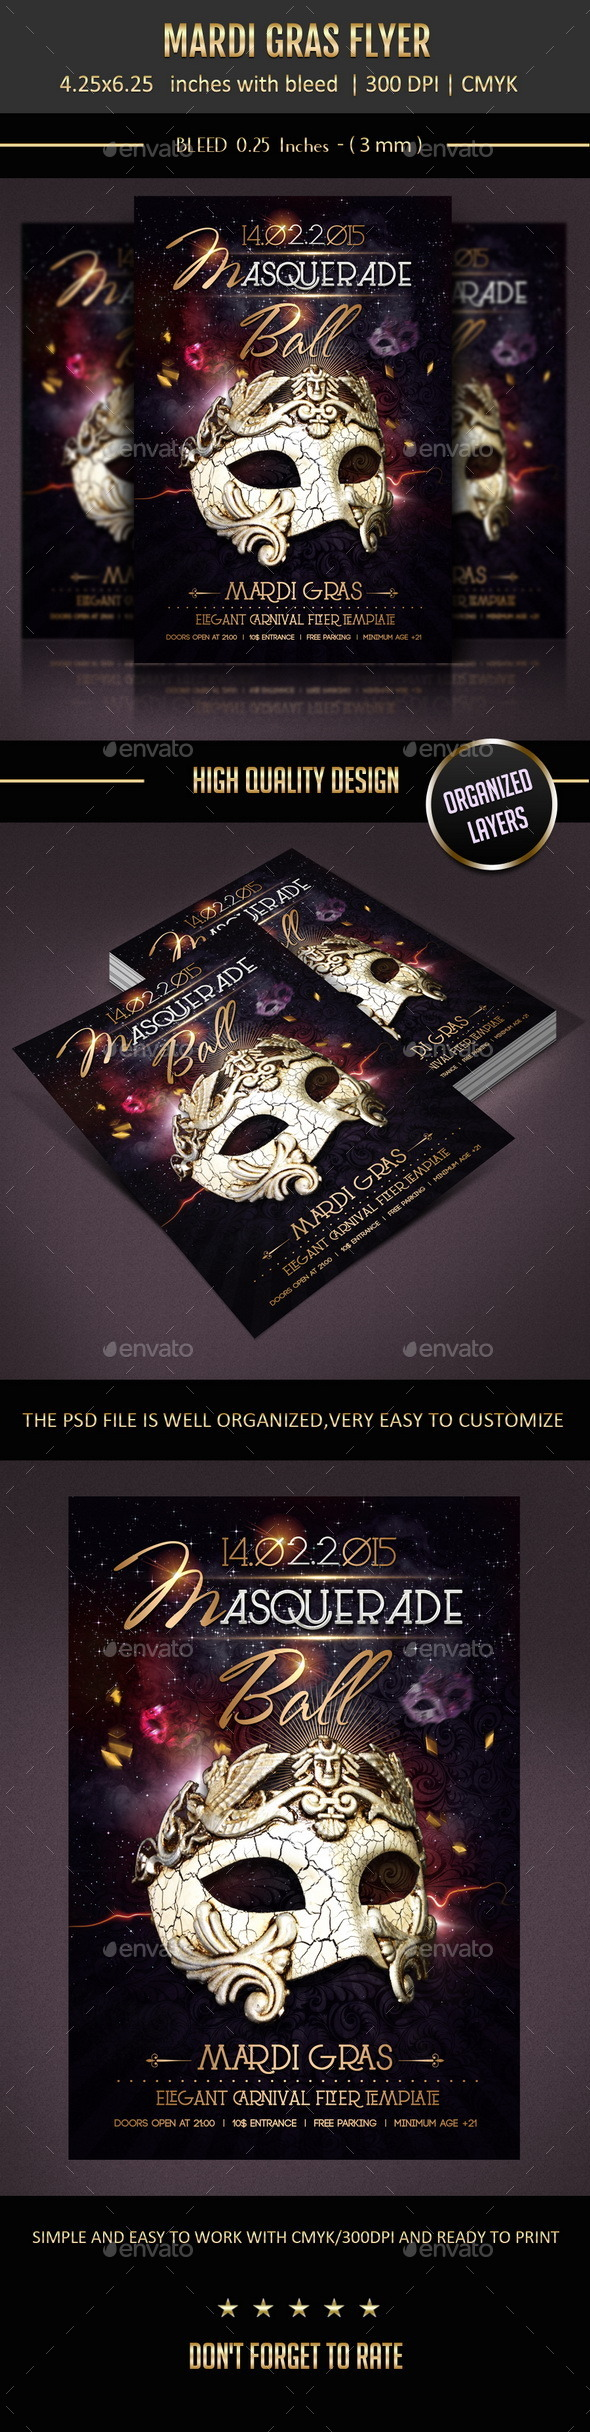 GraphicRiver Mardi Gras Flyer 9957935